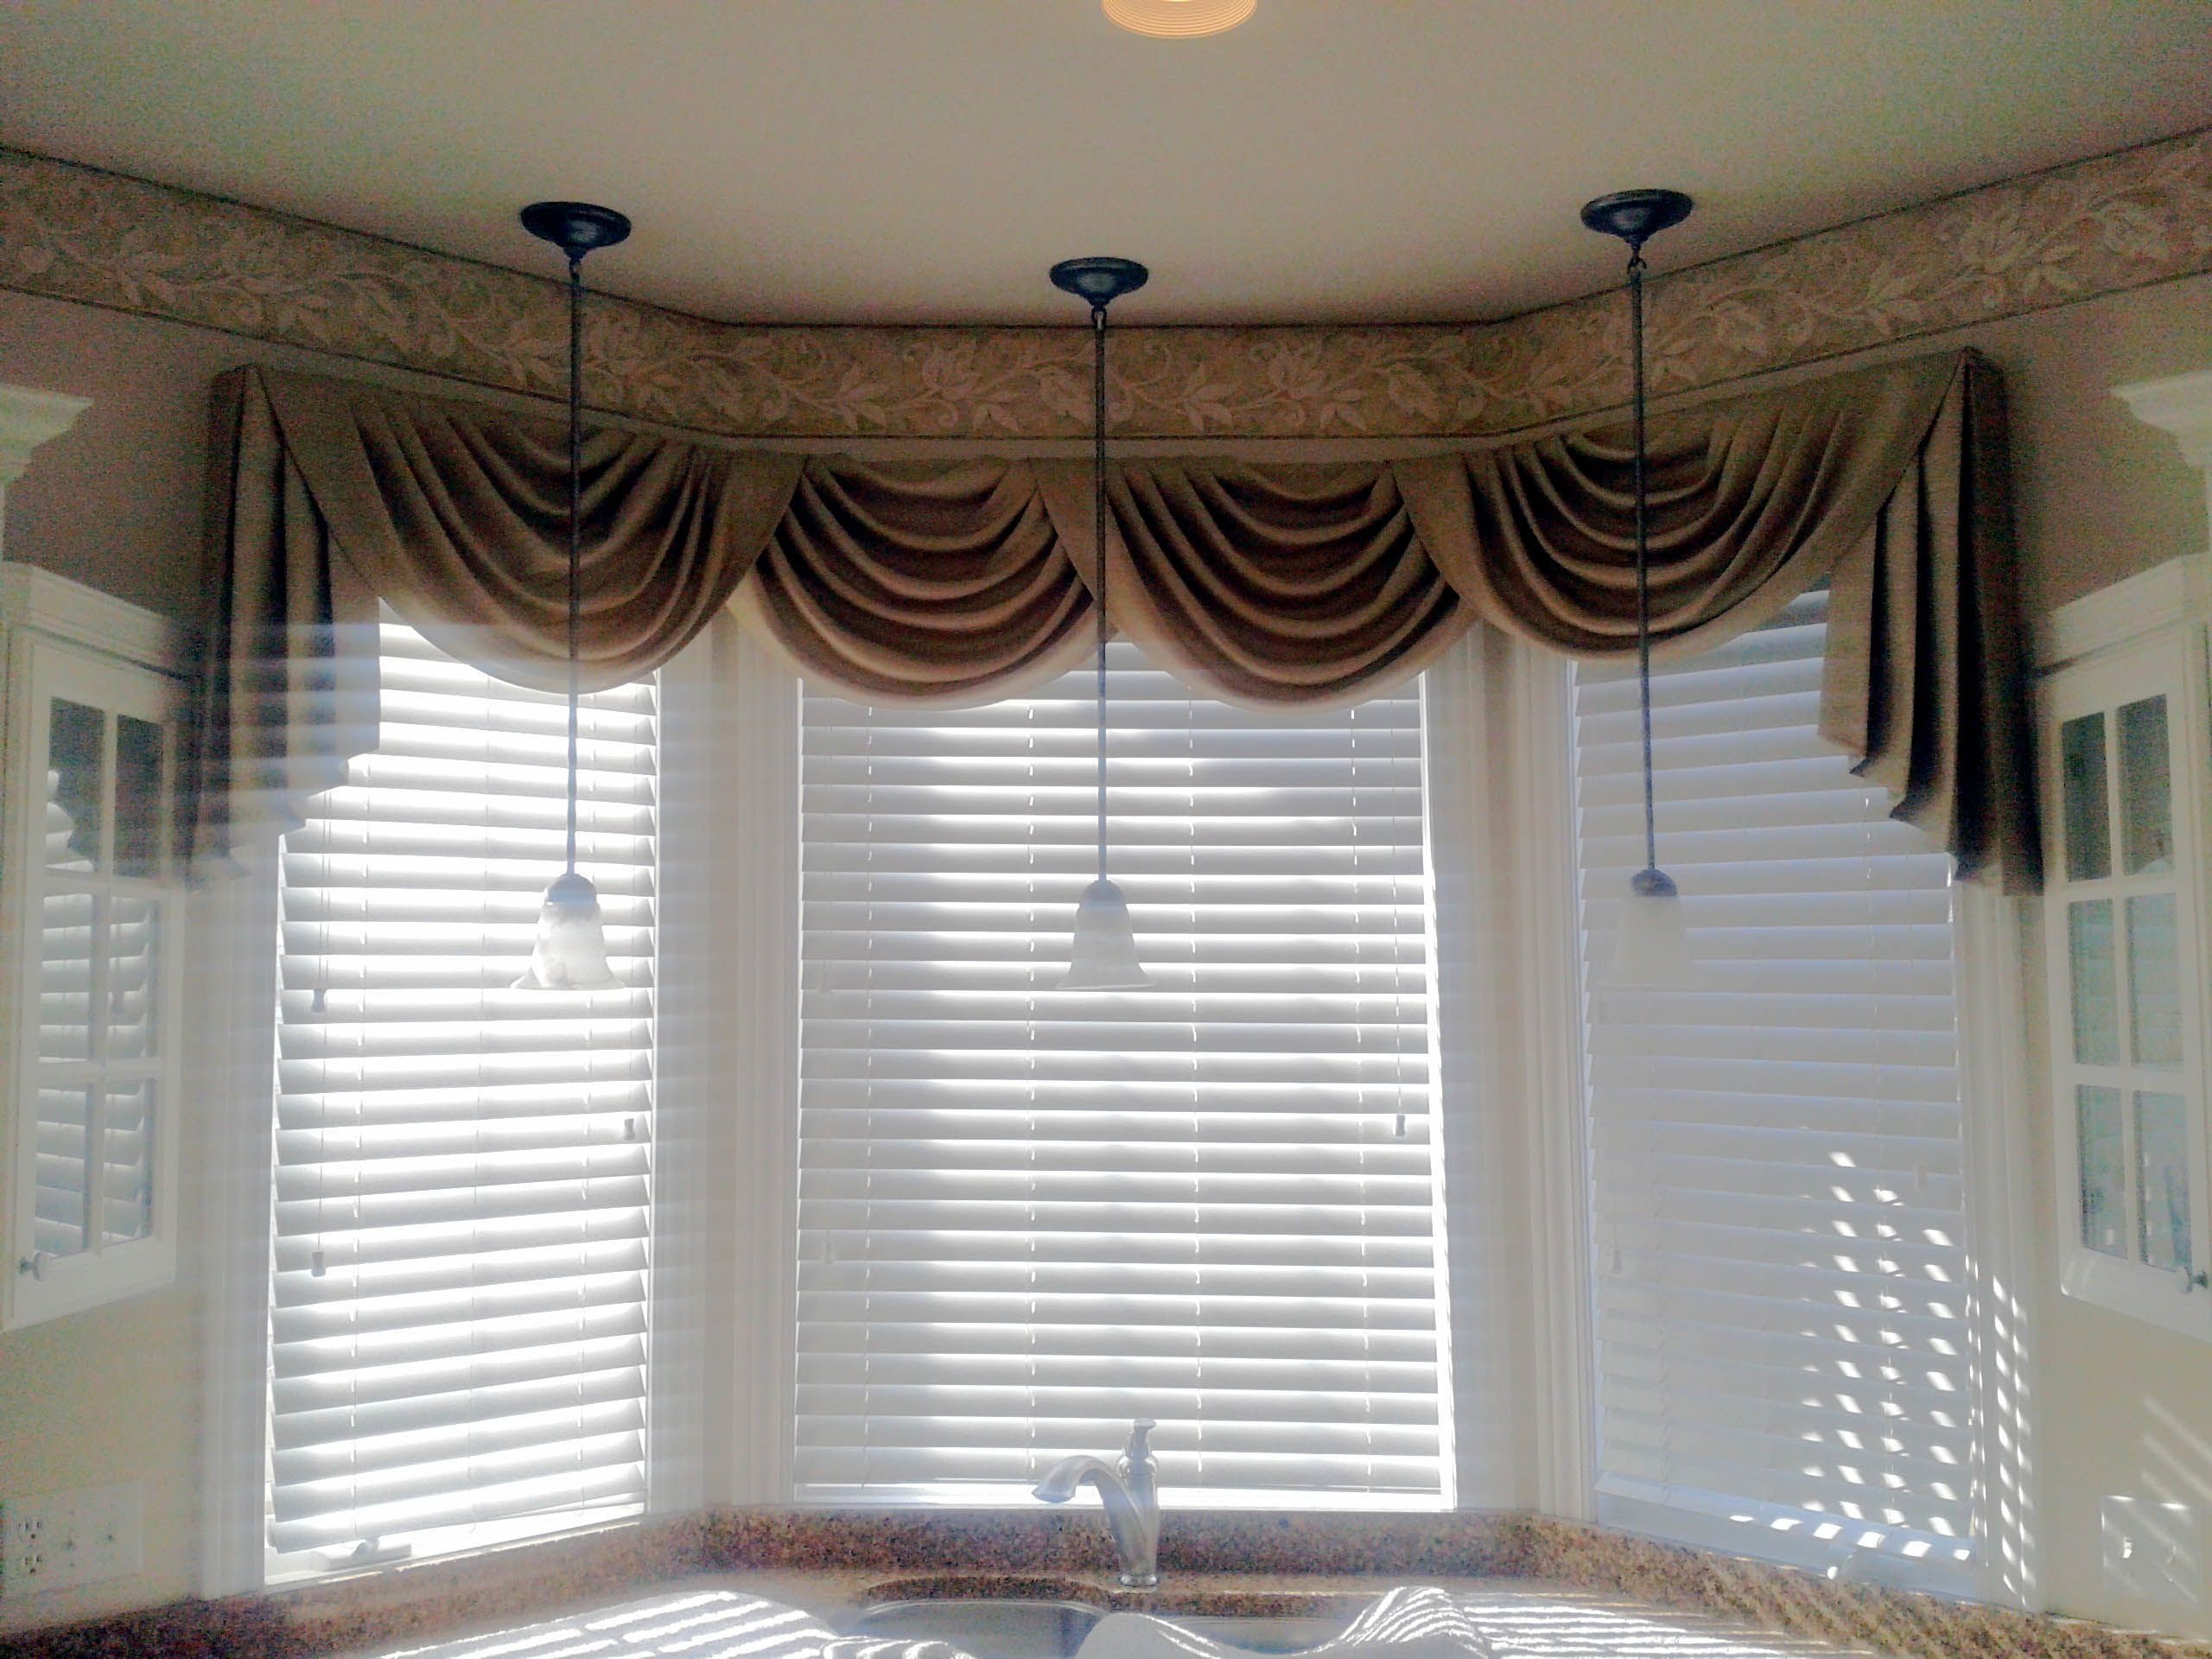 Swag curtain valance over wood blinds swag curtains Curtains venetian blinds